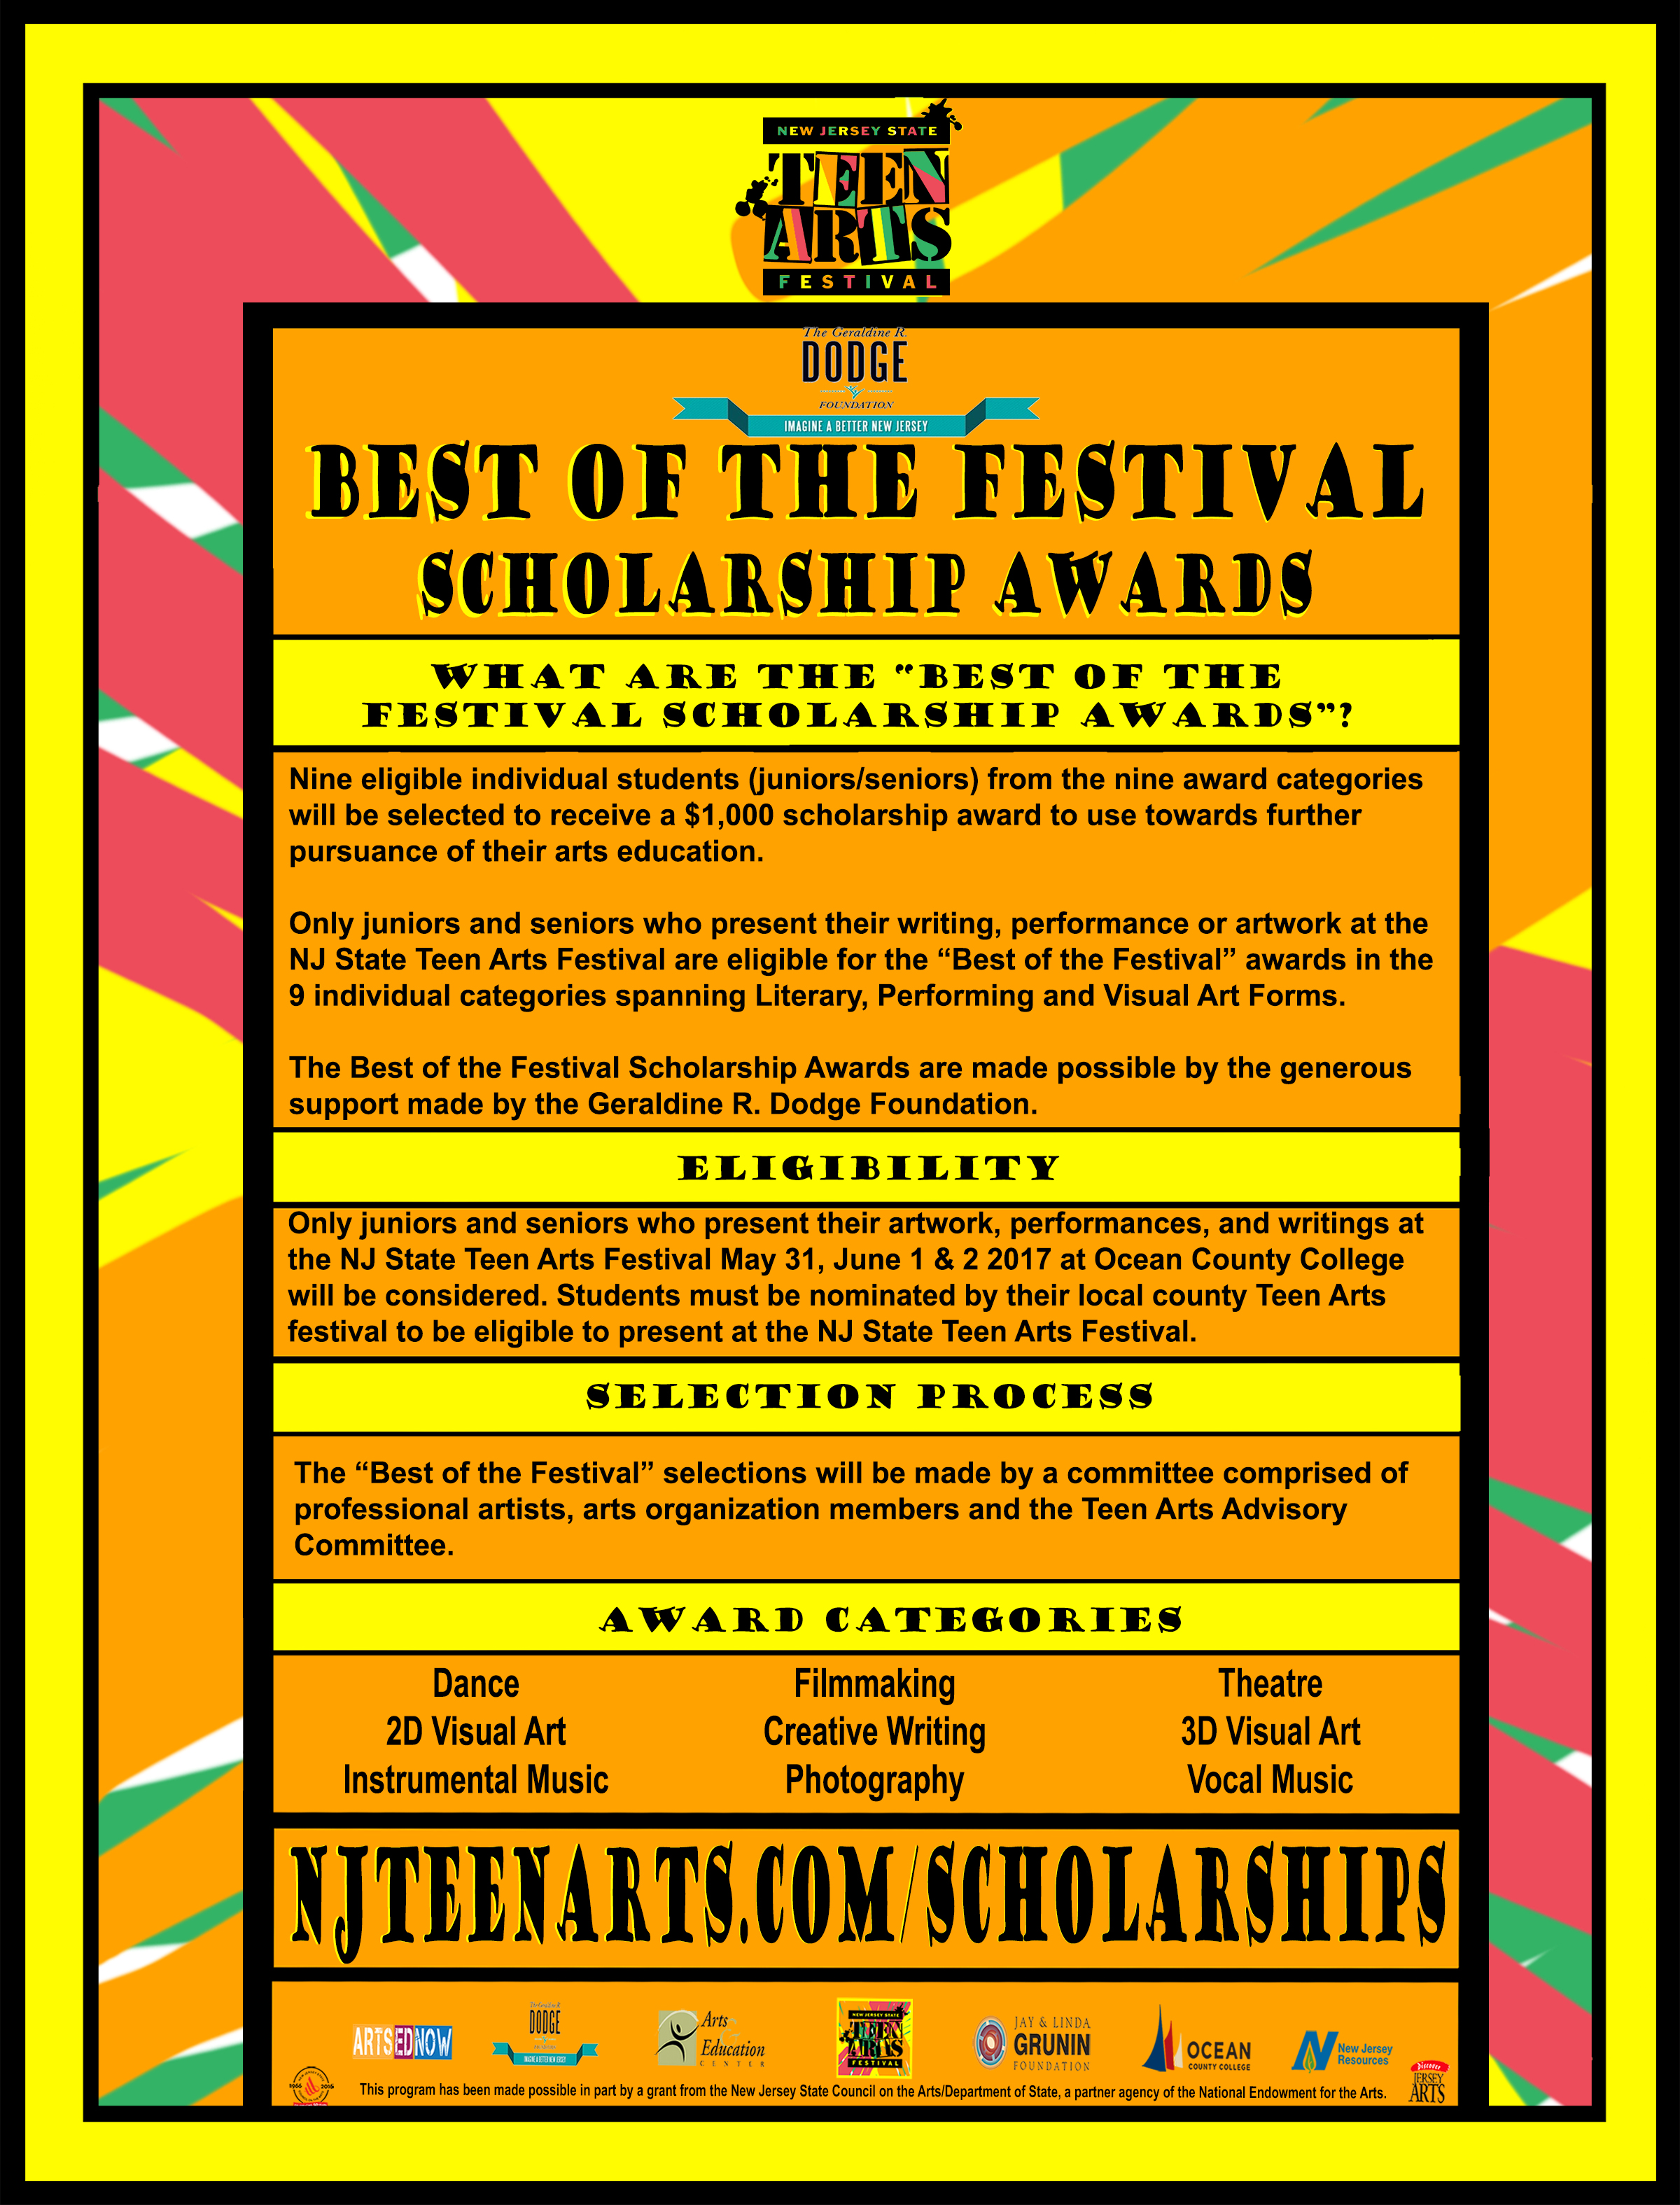 Best of the Festival Scholarship Awards Informational Flyer